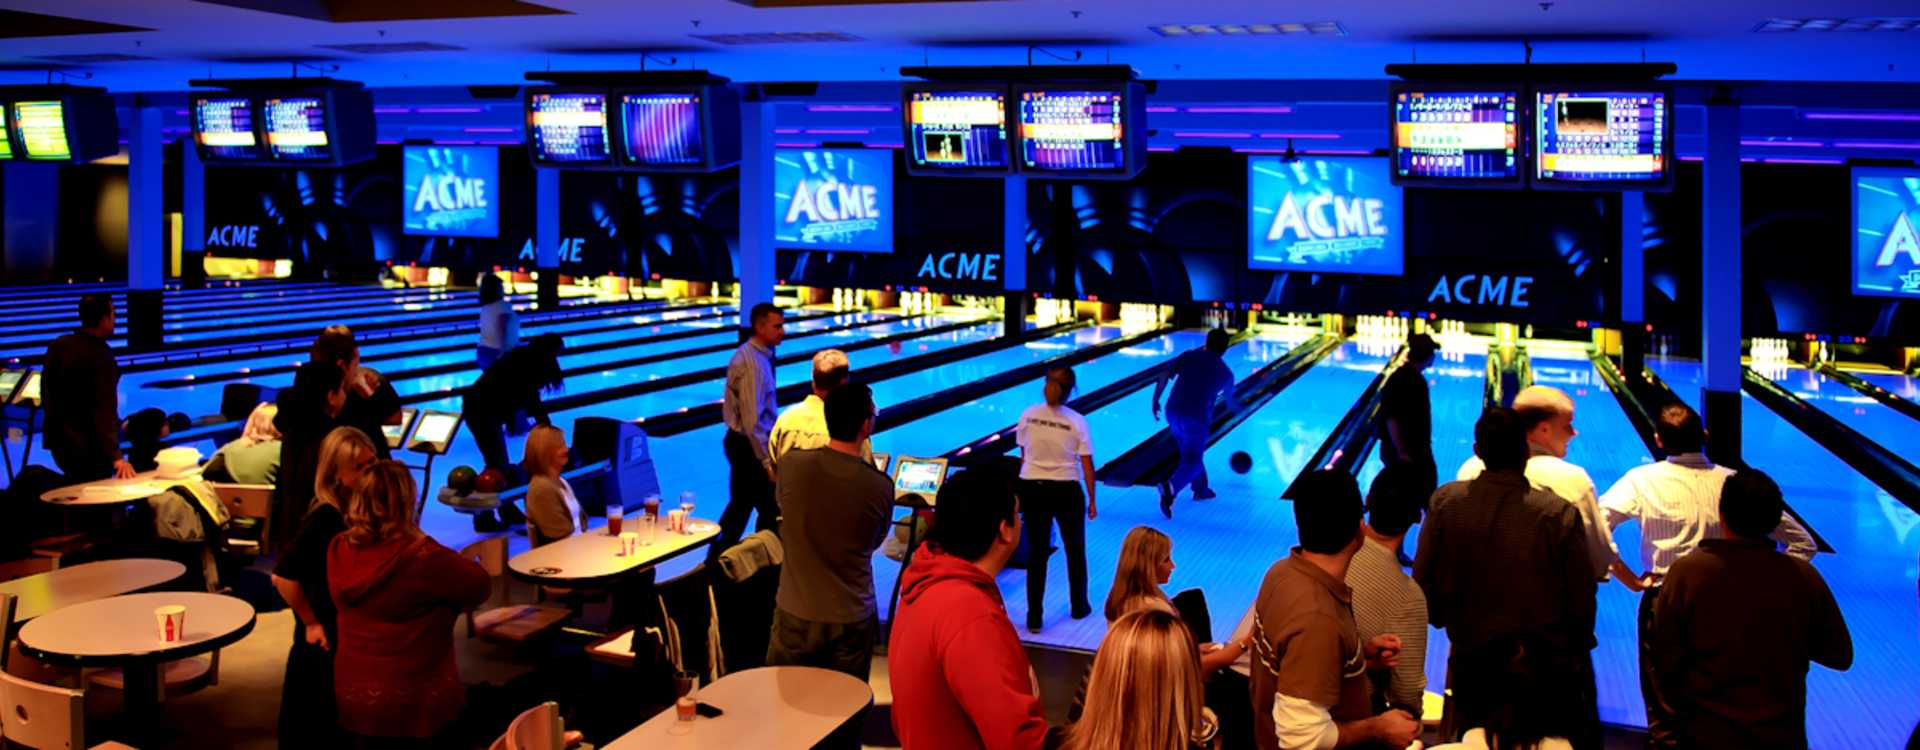 meeting-facility-ACME_Bowling__Billiards_and_Events_Meeting_Facility-3.jpg